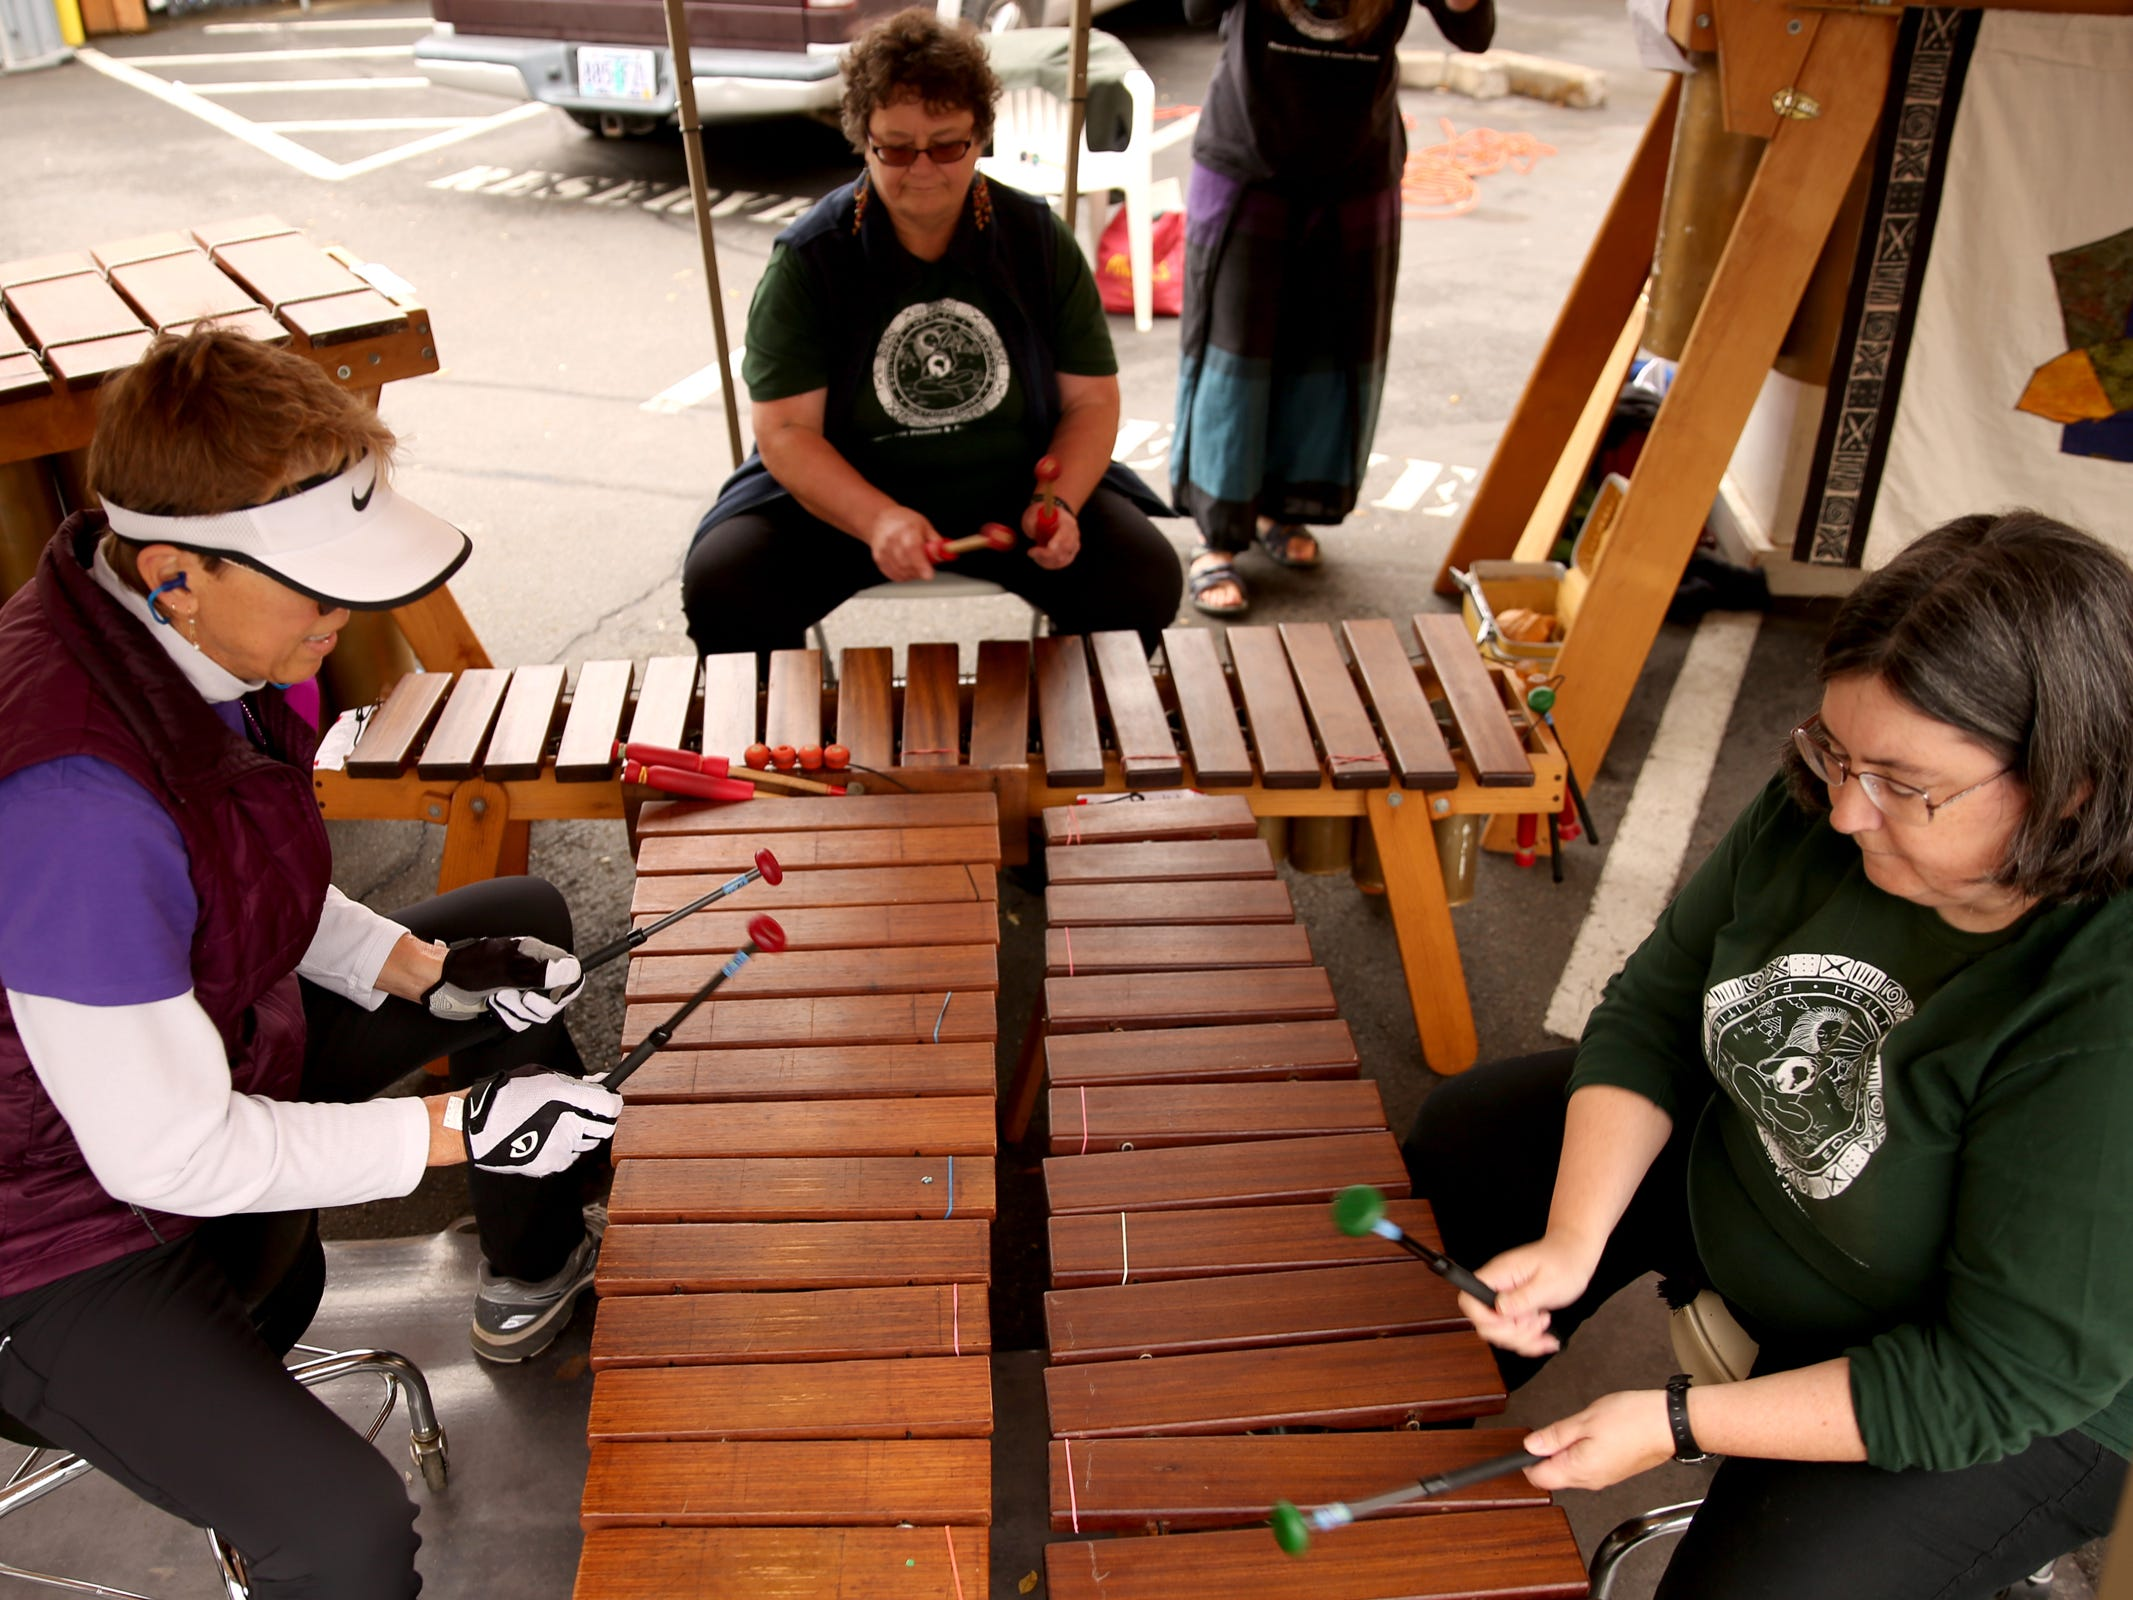 Marimba players perform during the Silverton Sidewalk Shindig, a culture of music festival, in downtown Silverton on Saturday, Oct. 6, 2018.